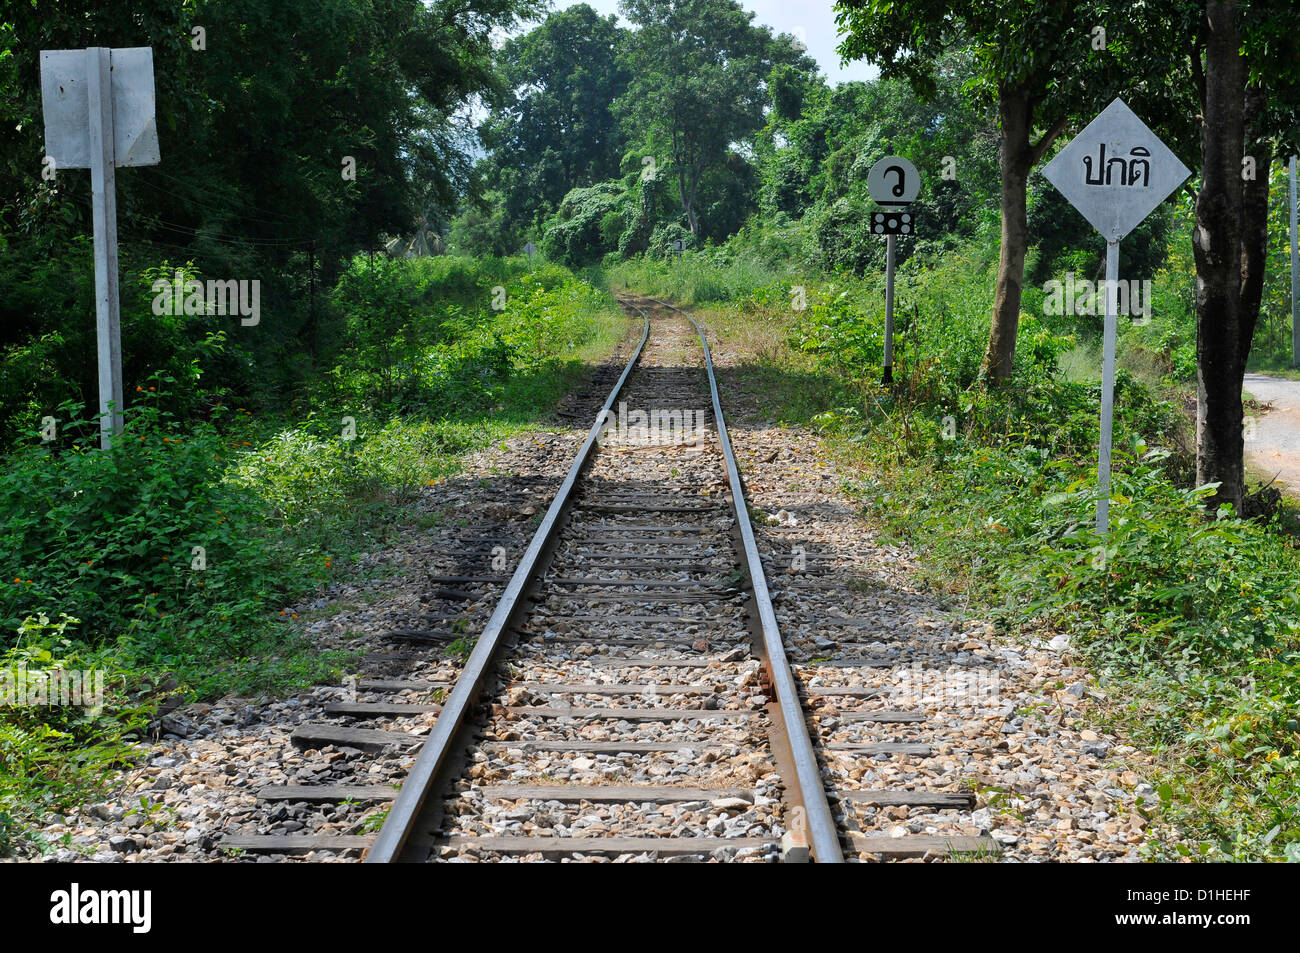 The Burma railway line running north after leaving the Bridge over The River Kwai - Stock Image